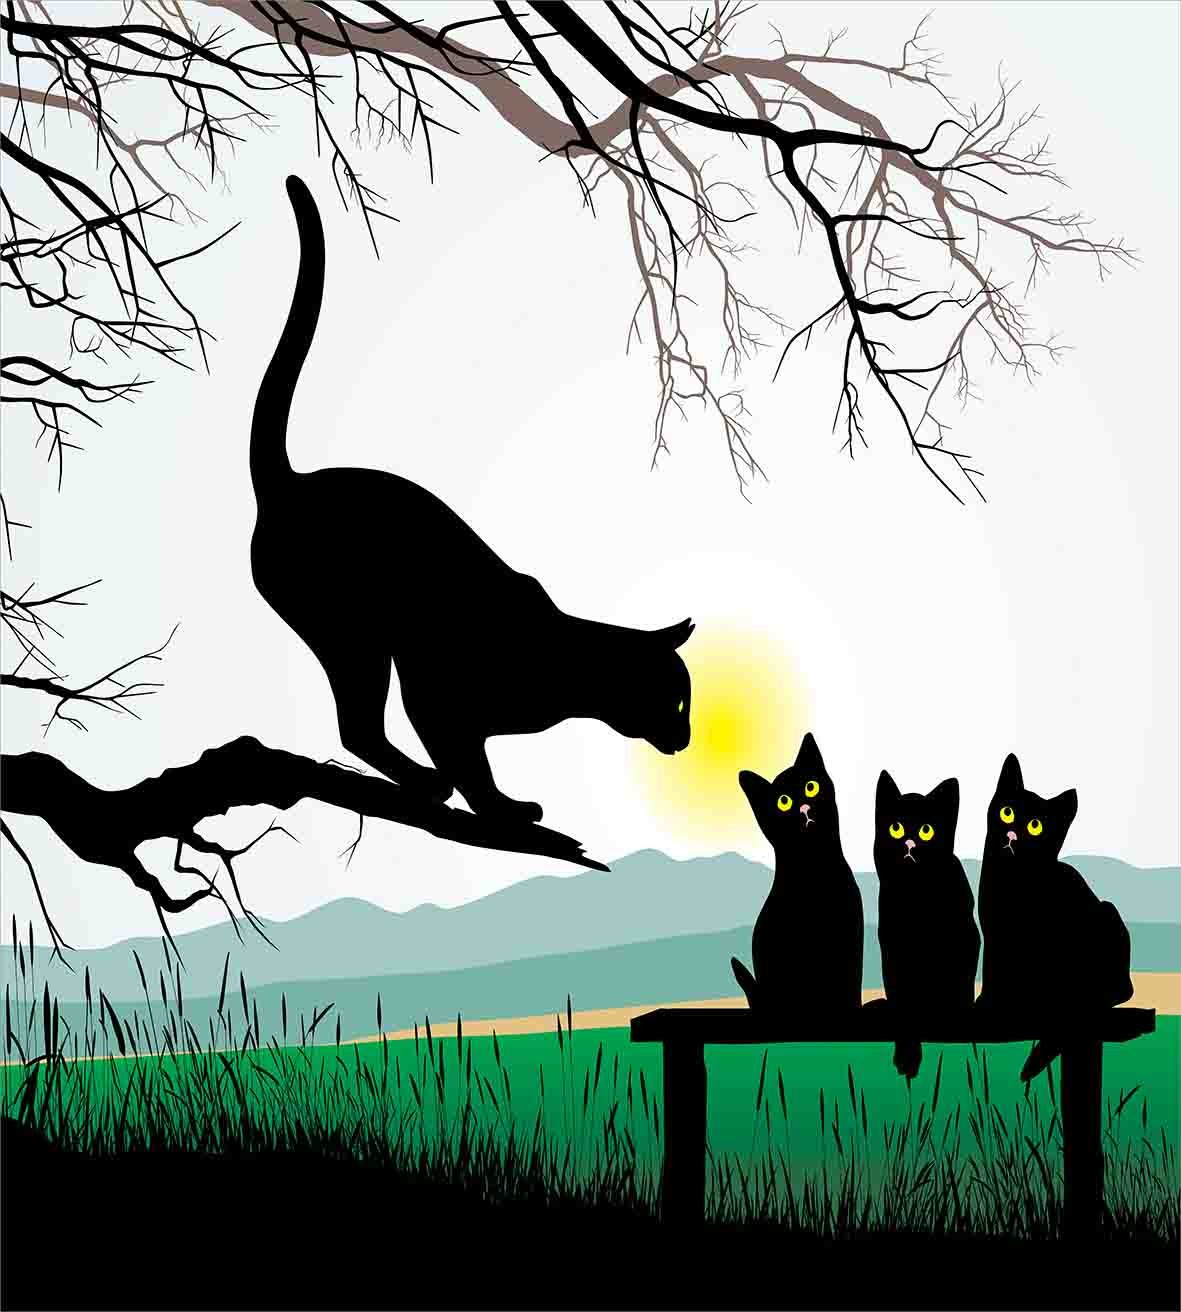 Ambesonne Cat Duvet Cover Set Twin Size, Mother Cat on Tree Branch and Baby Kittens in Park Best Friends I Love My Kitty Graphic, Decorative 2 Piece Bedding Set with 1 Pillow Sham, Multi by Ambesonne (Image #2)